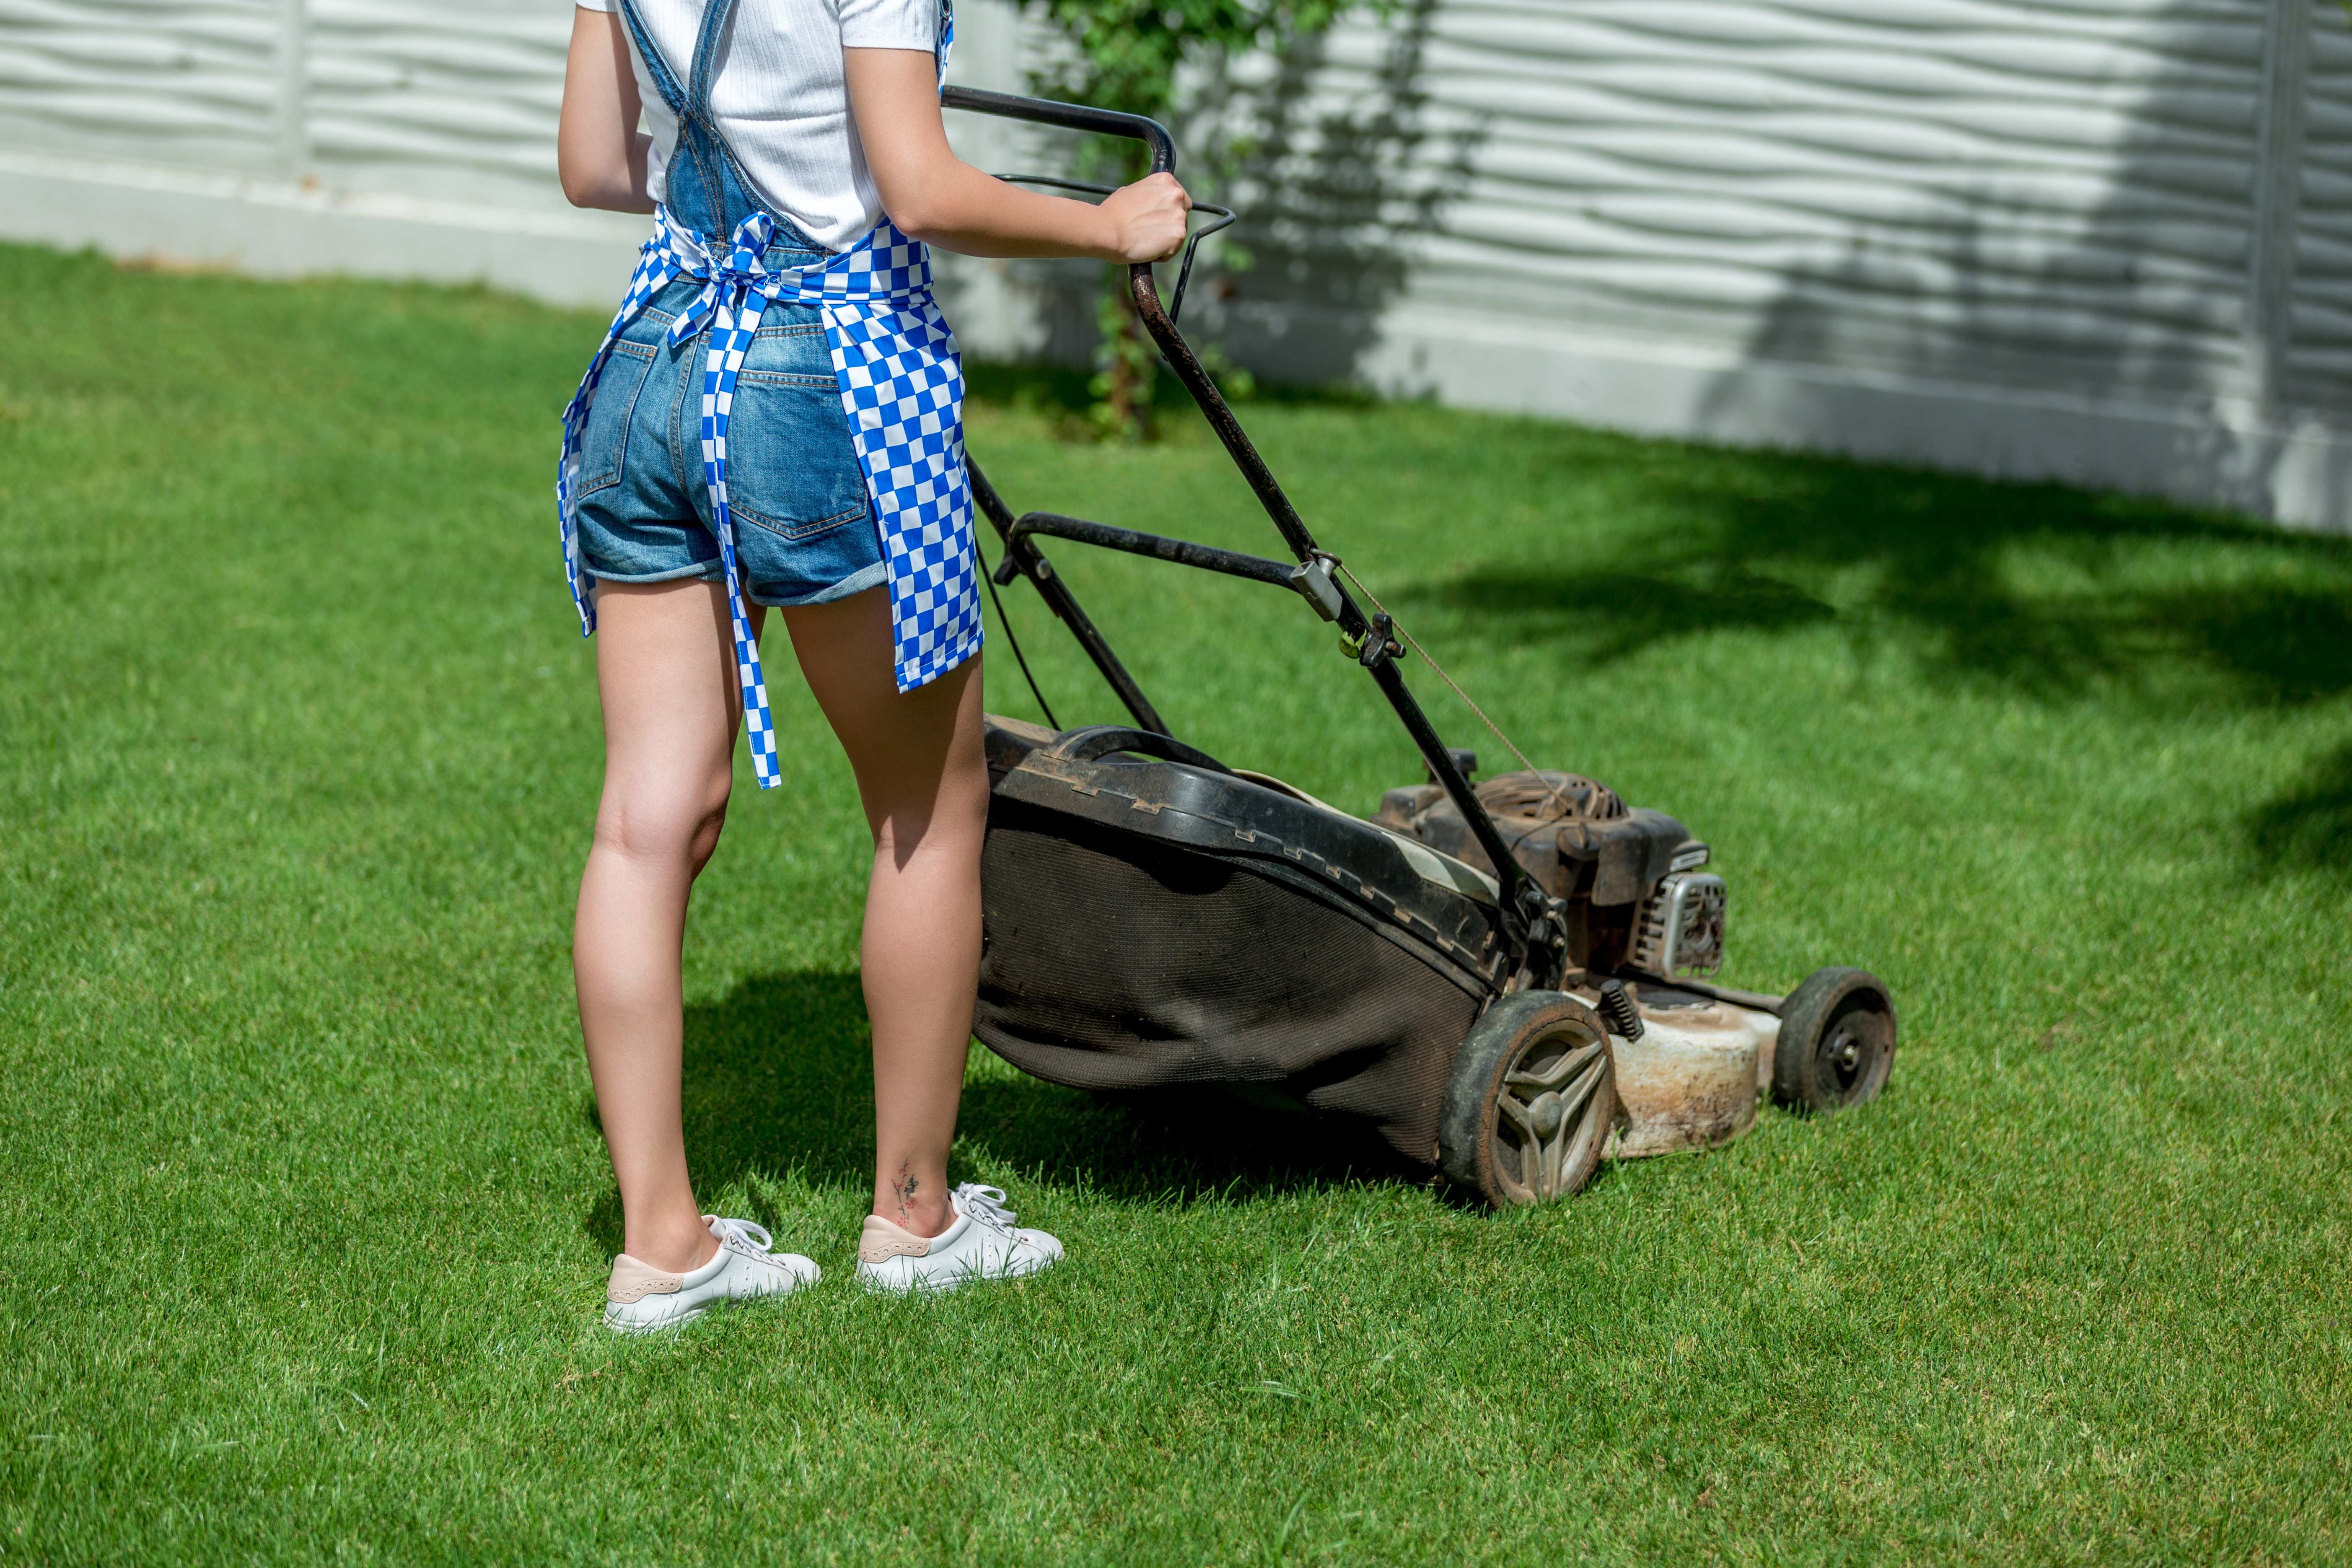 My Push Lawn Mower Doesn't Seem to Be Getting Gas | Home Guides | SF